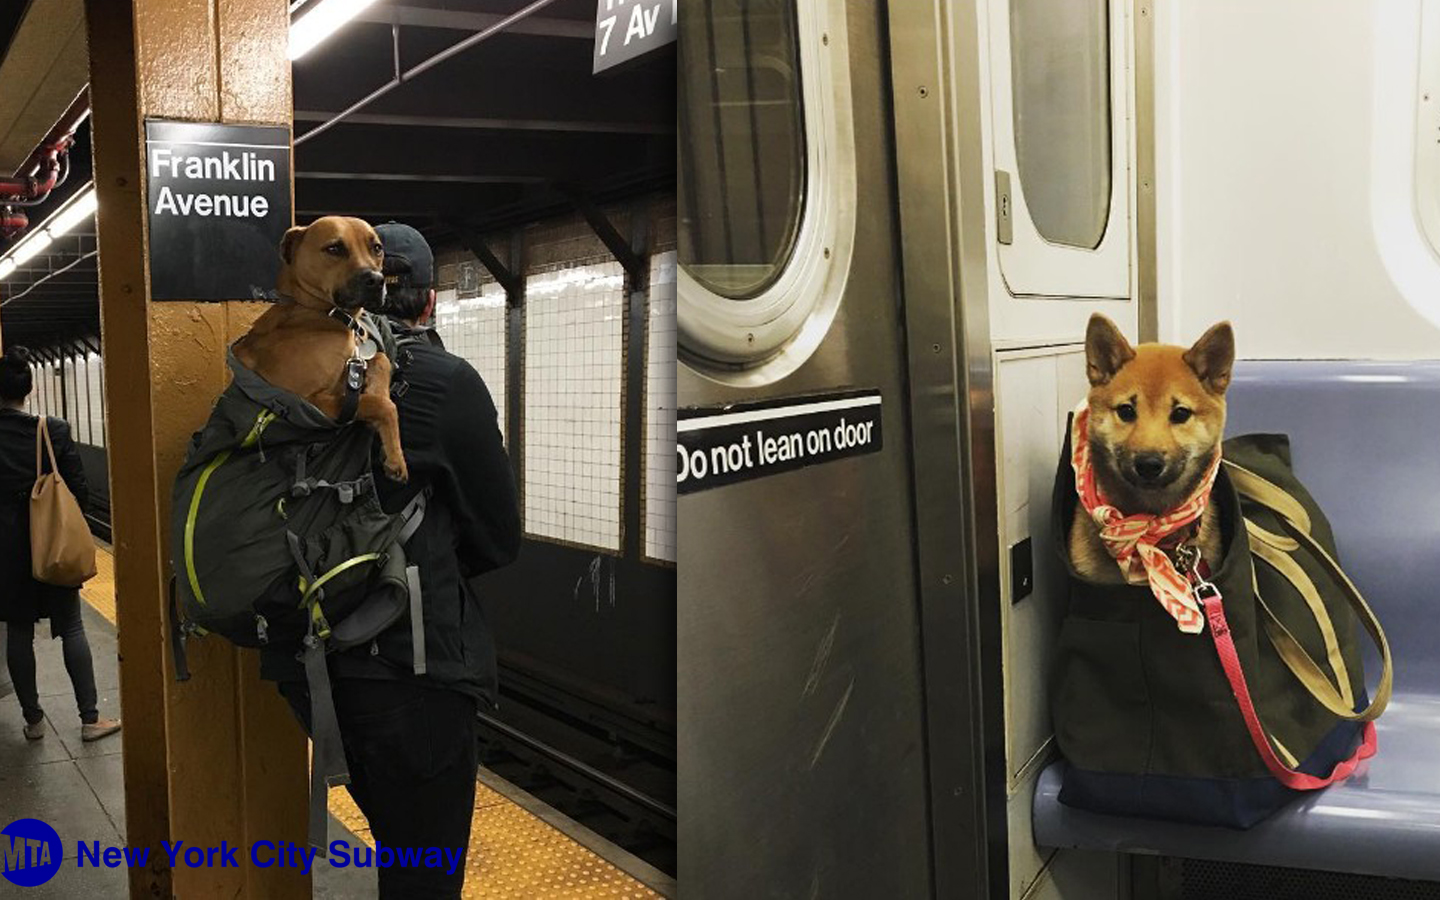 NYC Subway Bans Dogs Unless They Fit Into a Bag & New Yorkers' Solution is Hilariously Clever